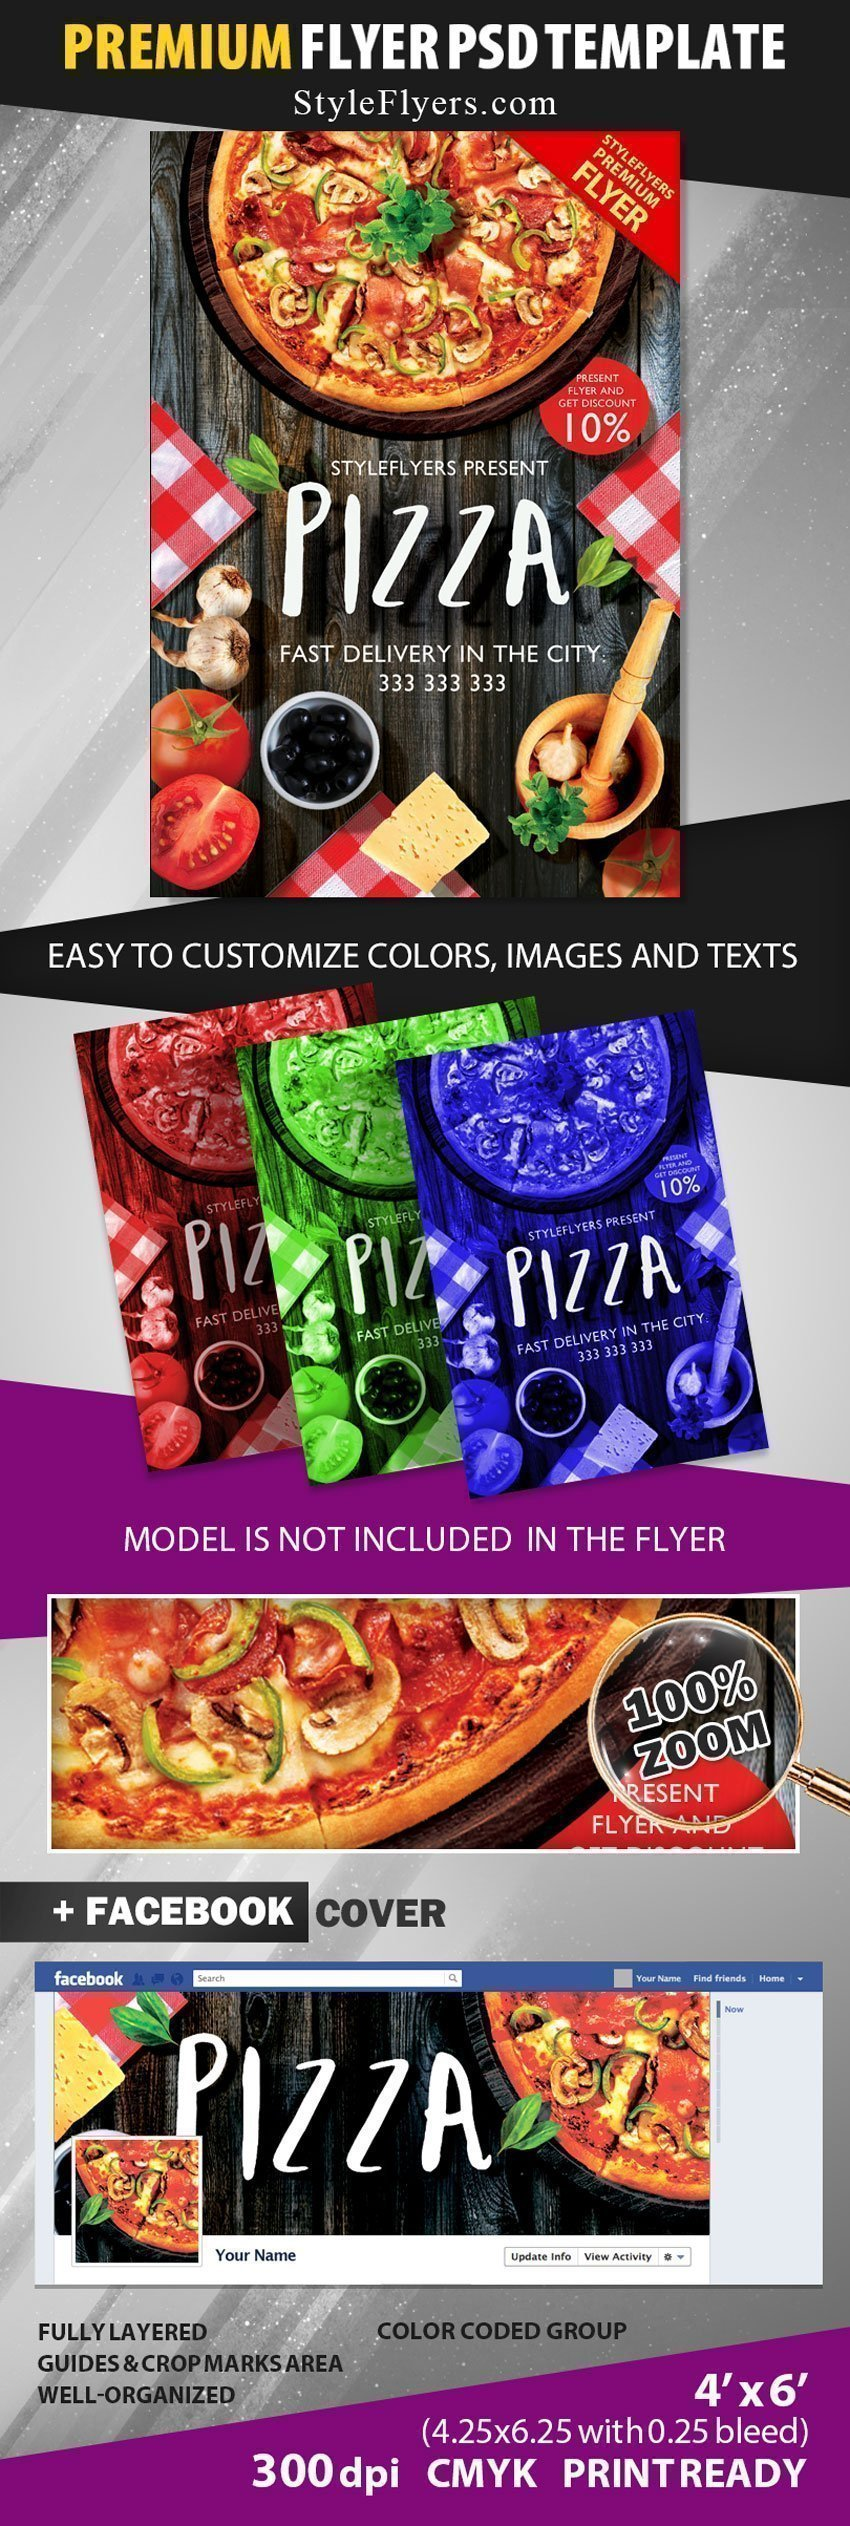 preview_premium_pizza_flyer